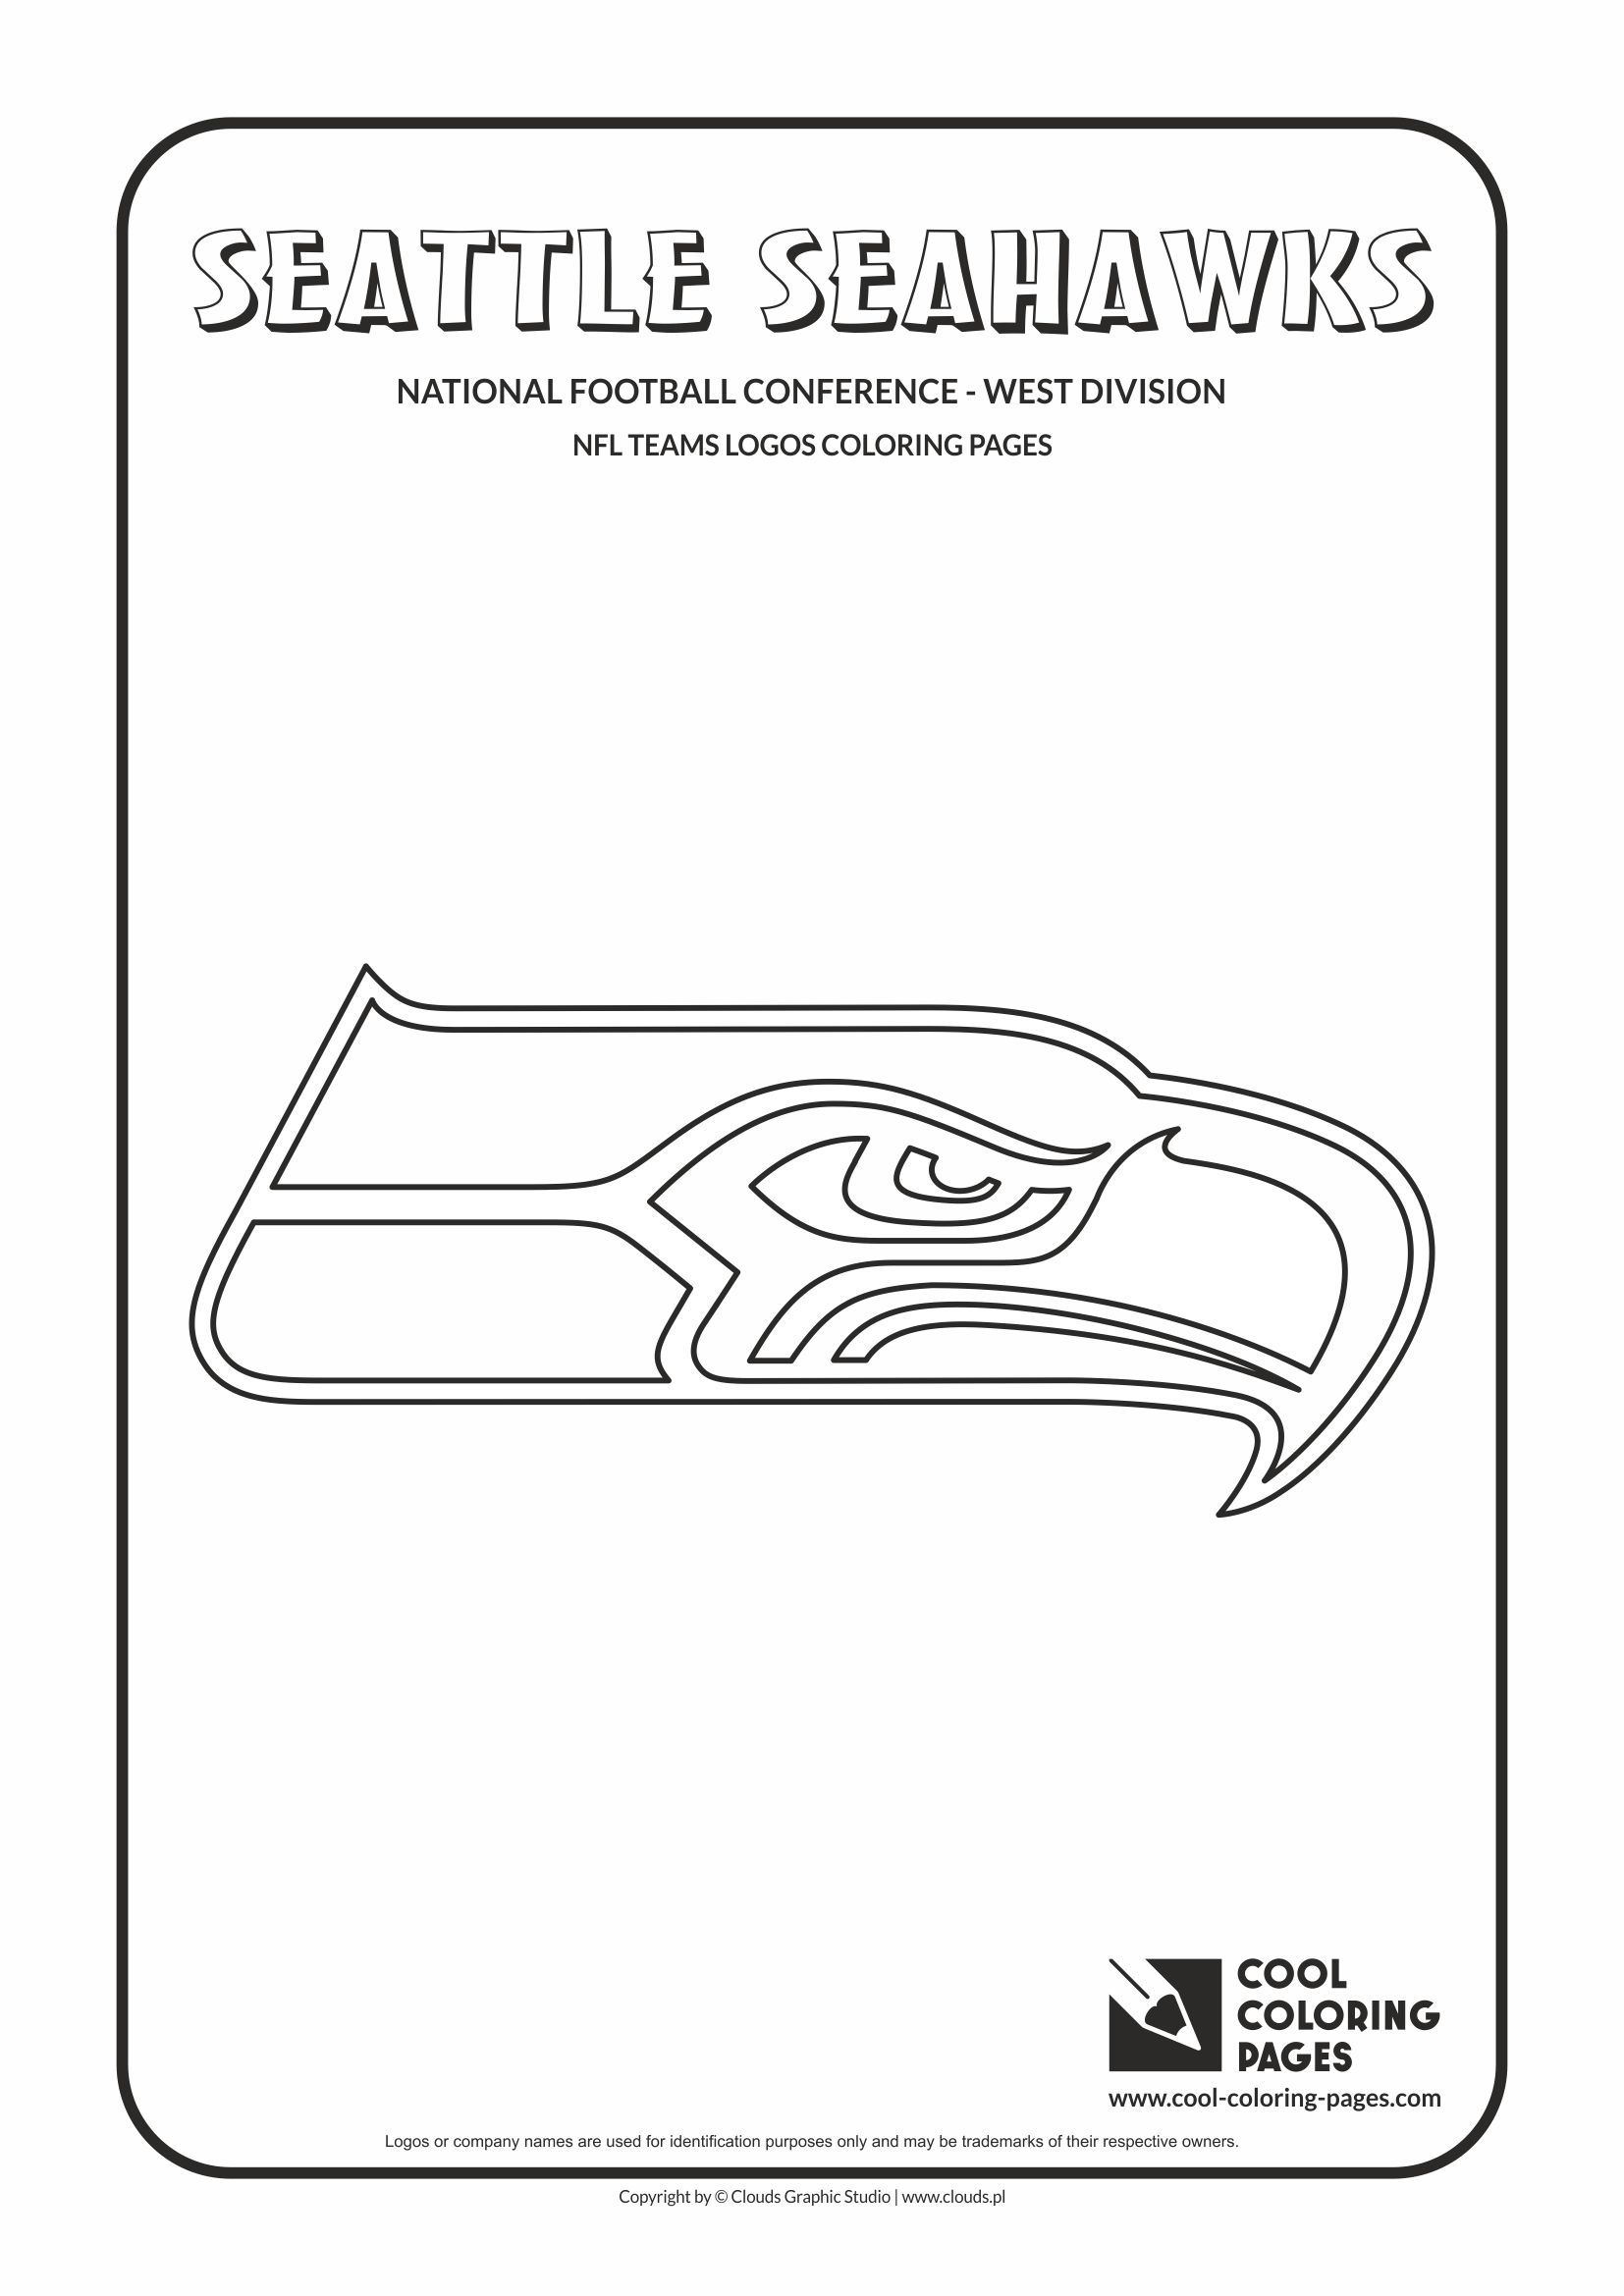 Seattle Seahawks Nfl American Football Teams Logos Coloring